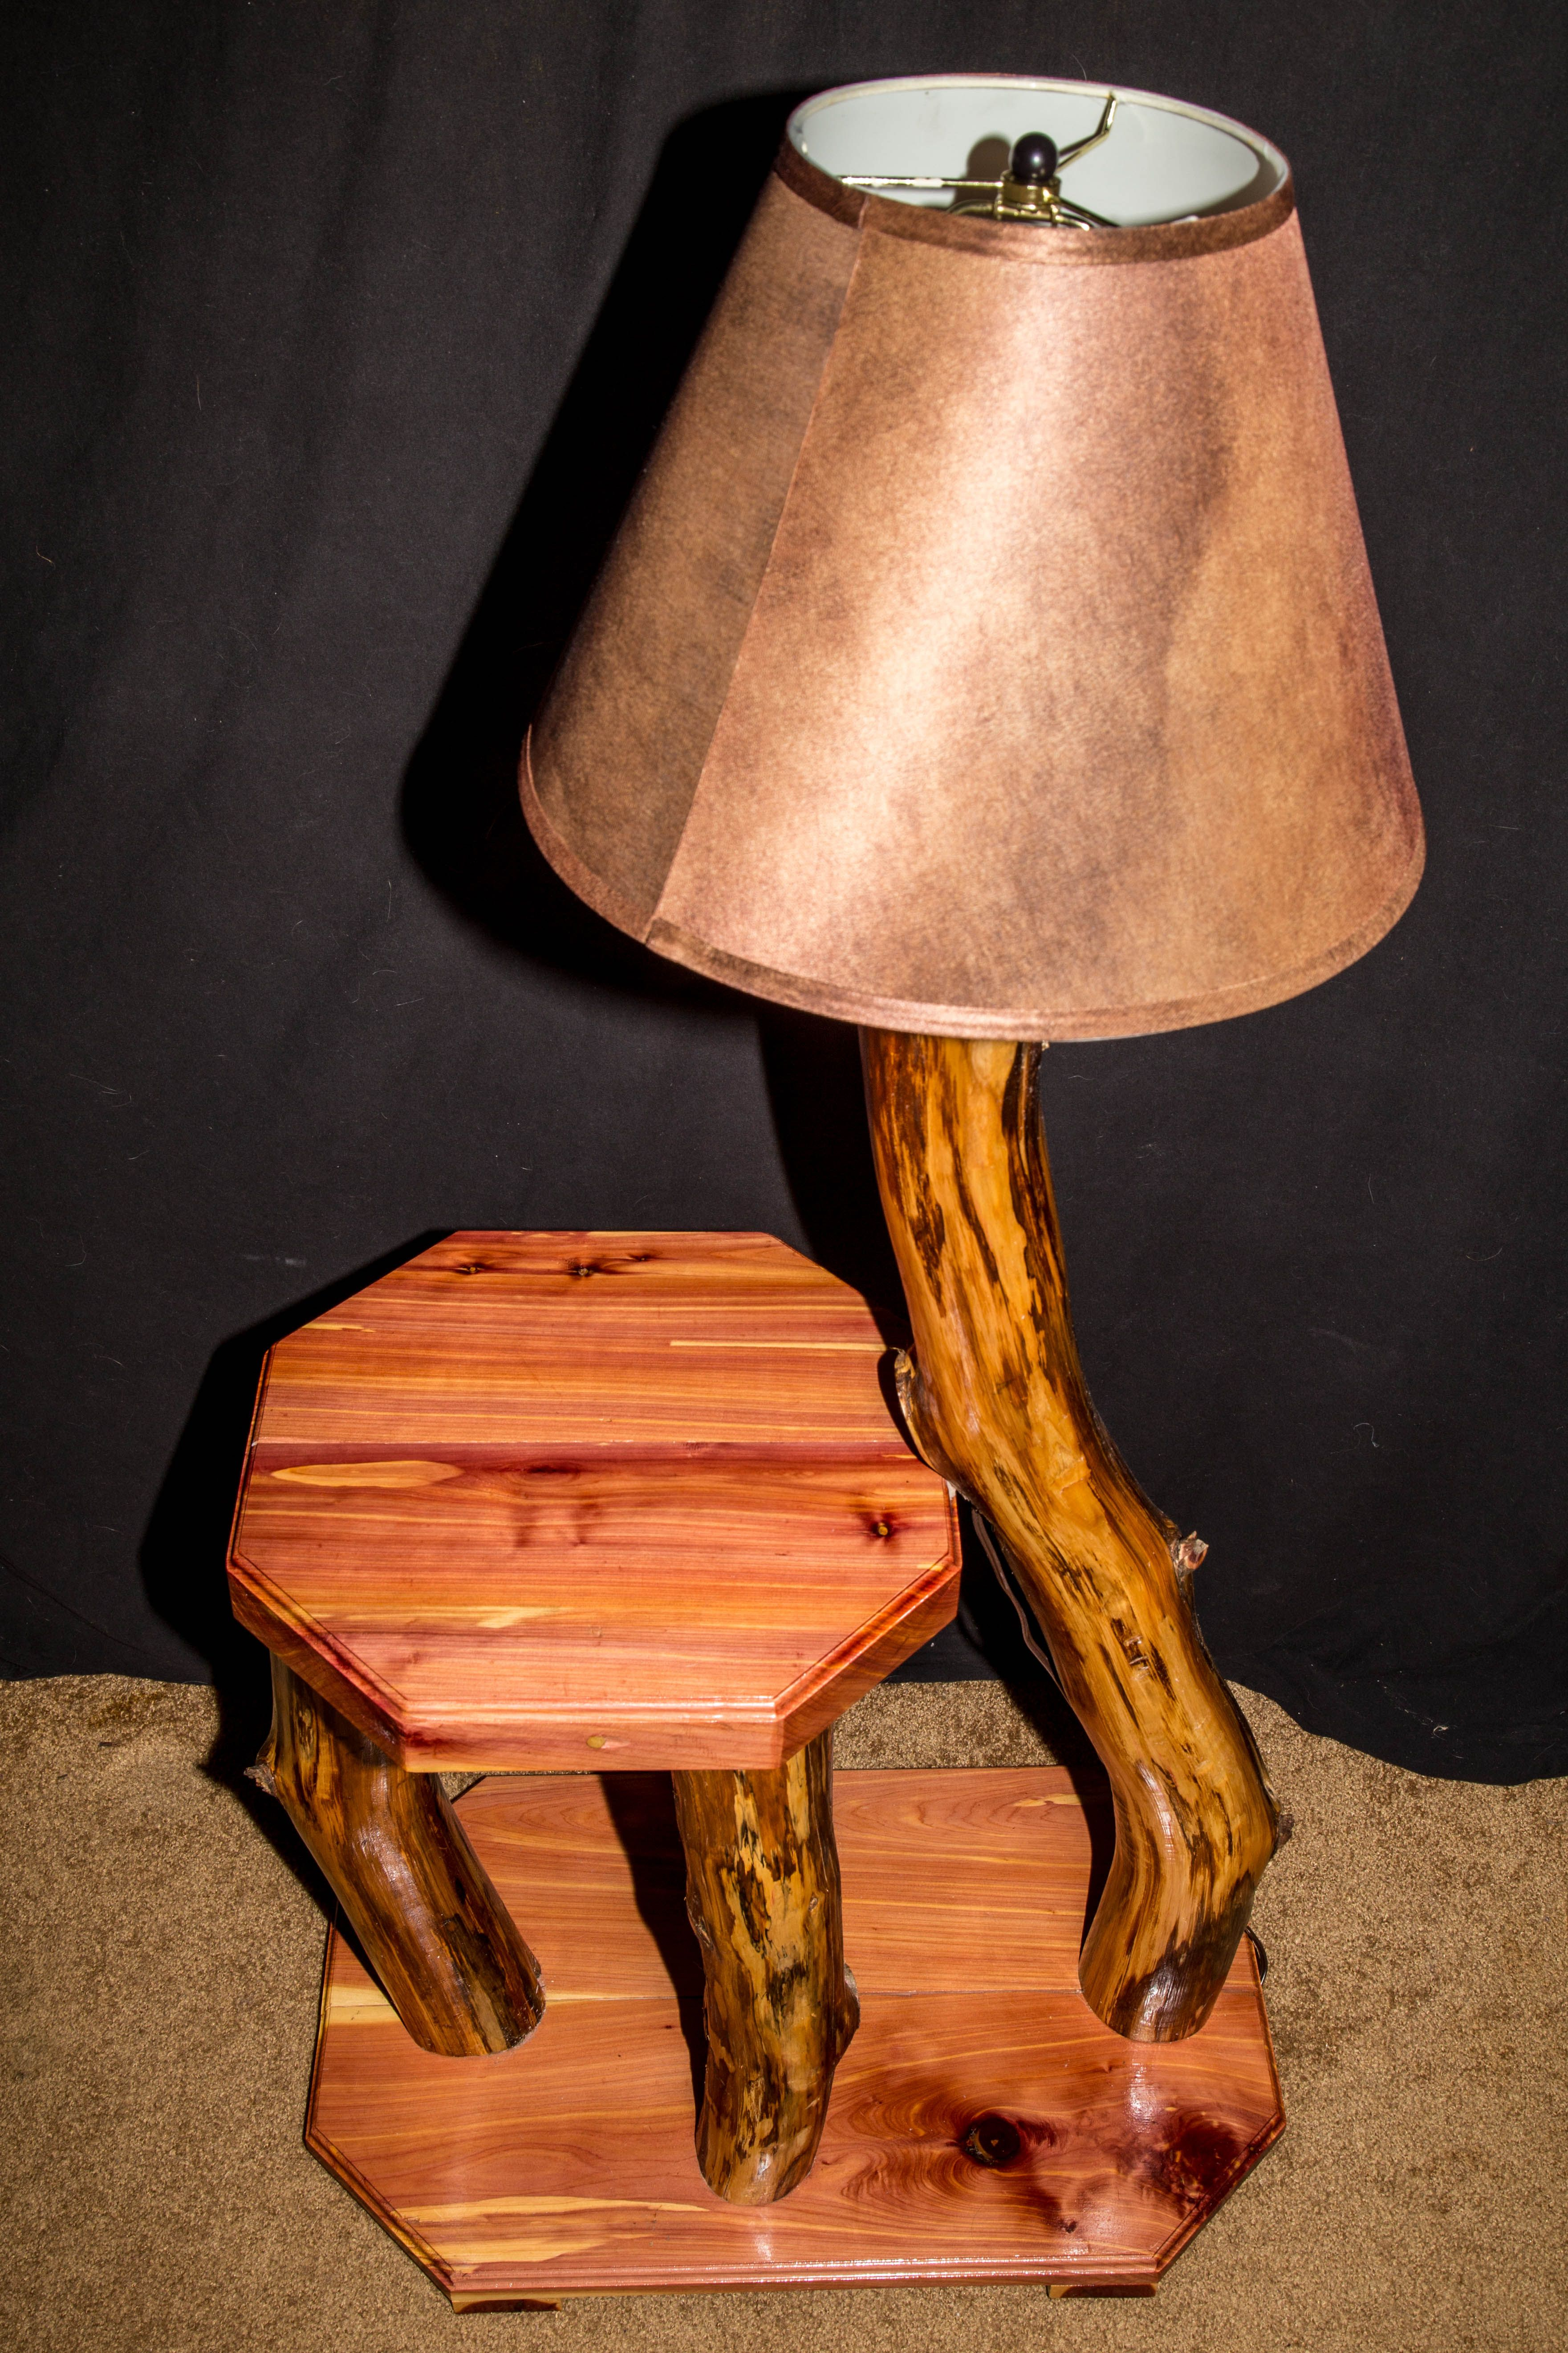 Finer Things Antiques A Solid Teak Floor Lamp With Built In Table And Vintage Parchment Shade Teak Flooring Lamp Vintage Table Lamp